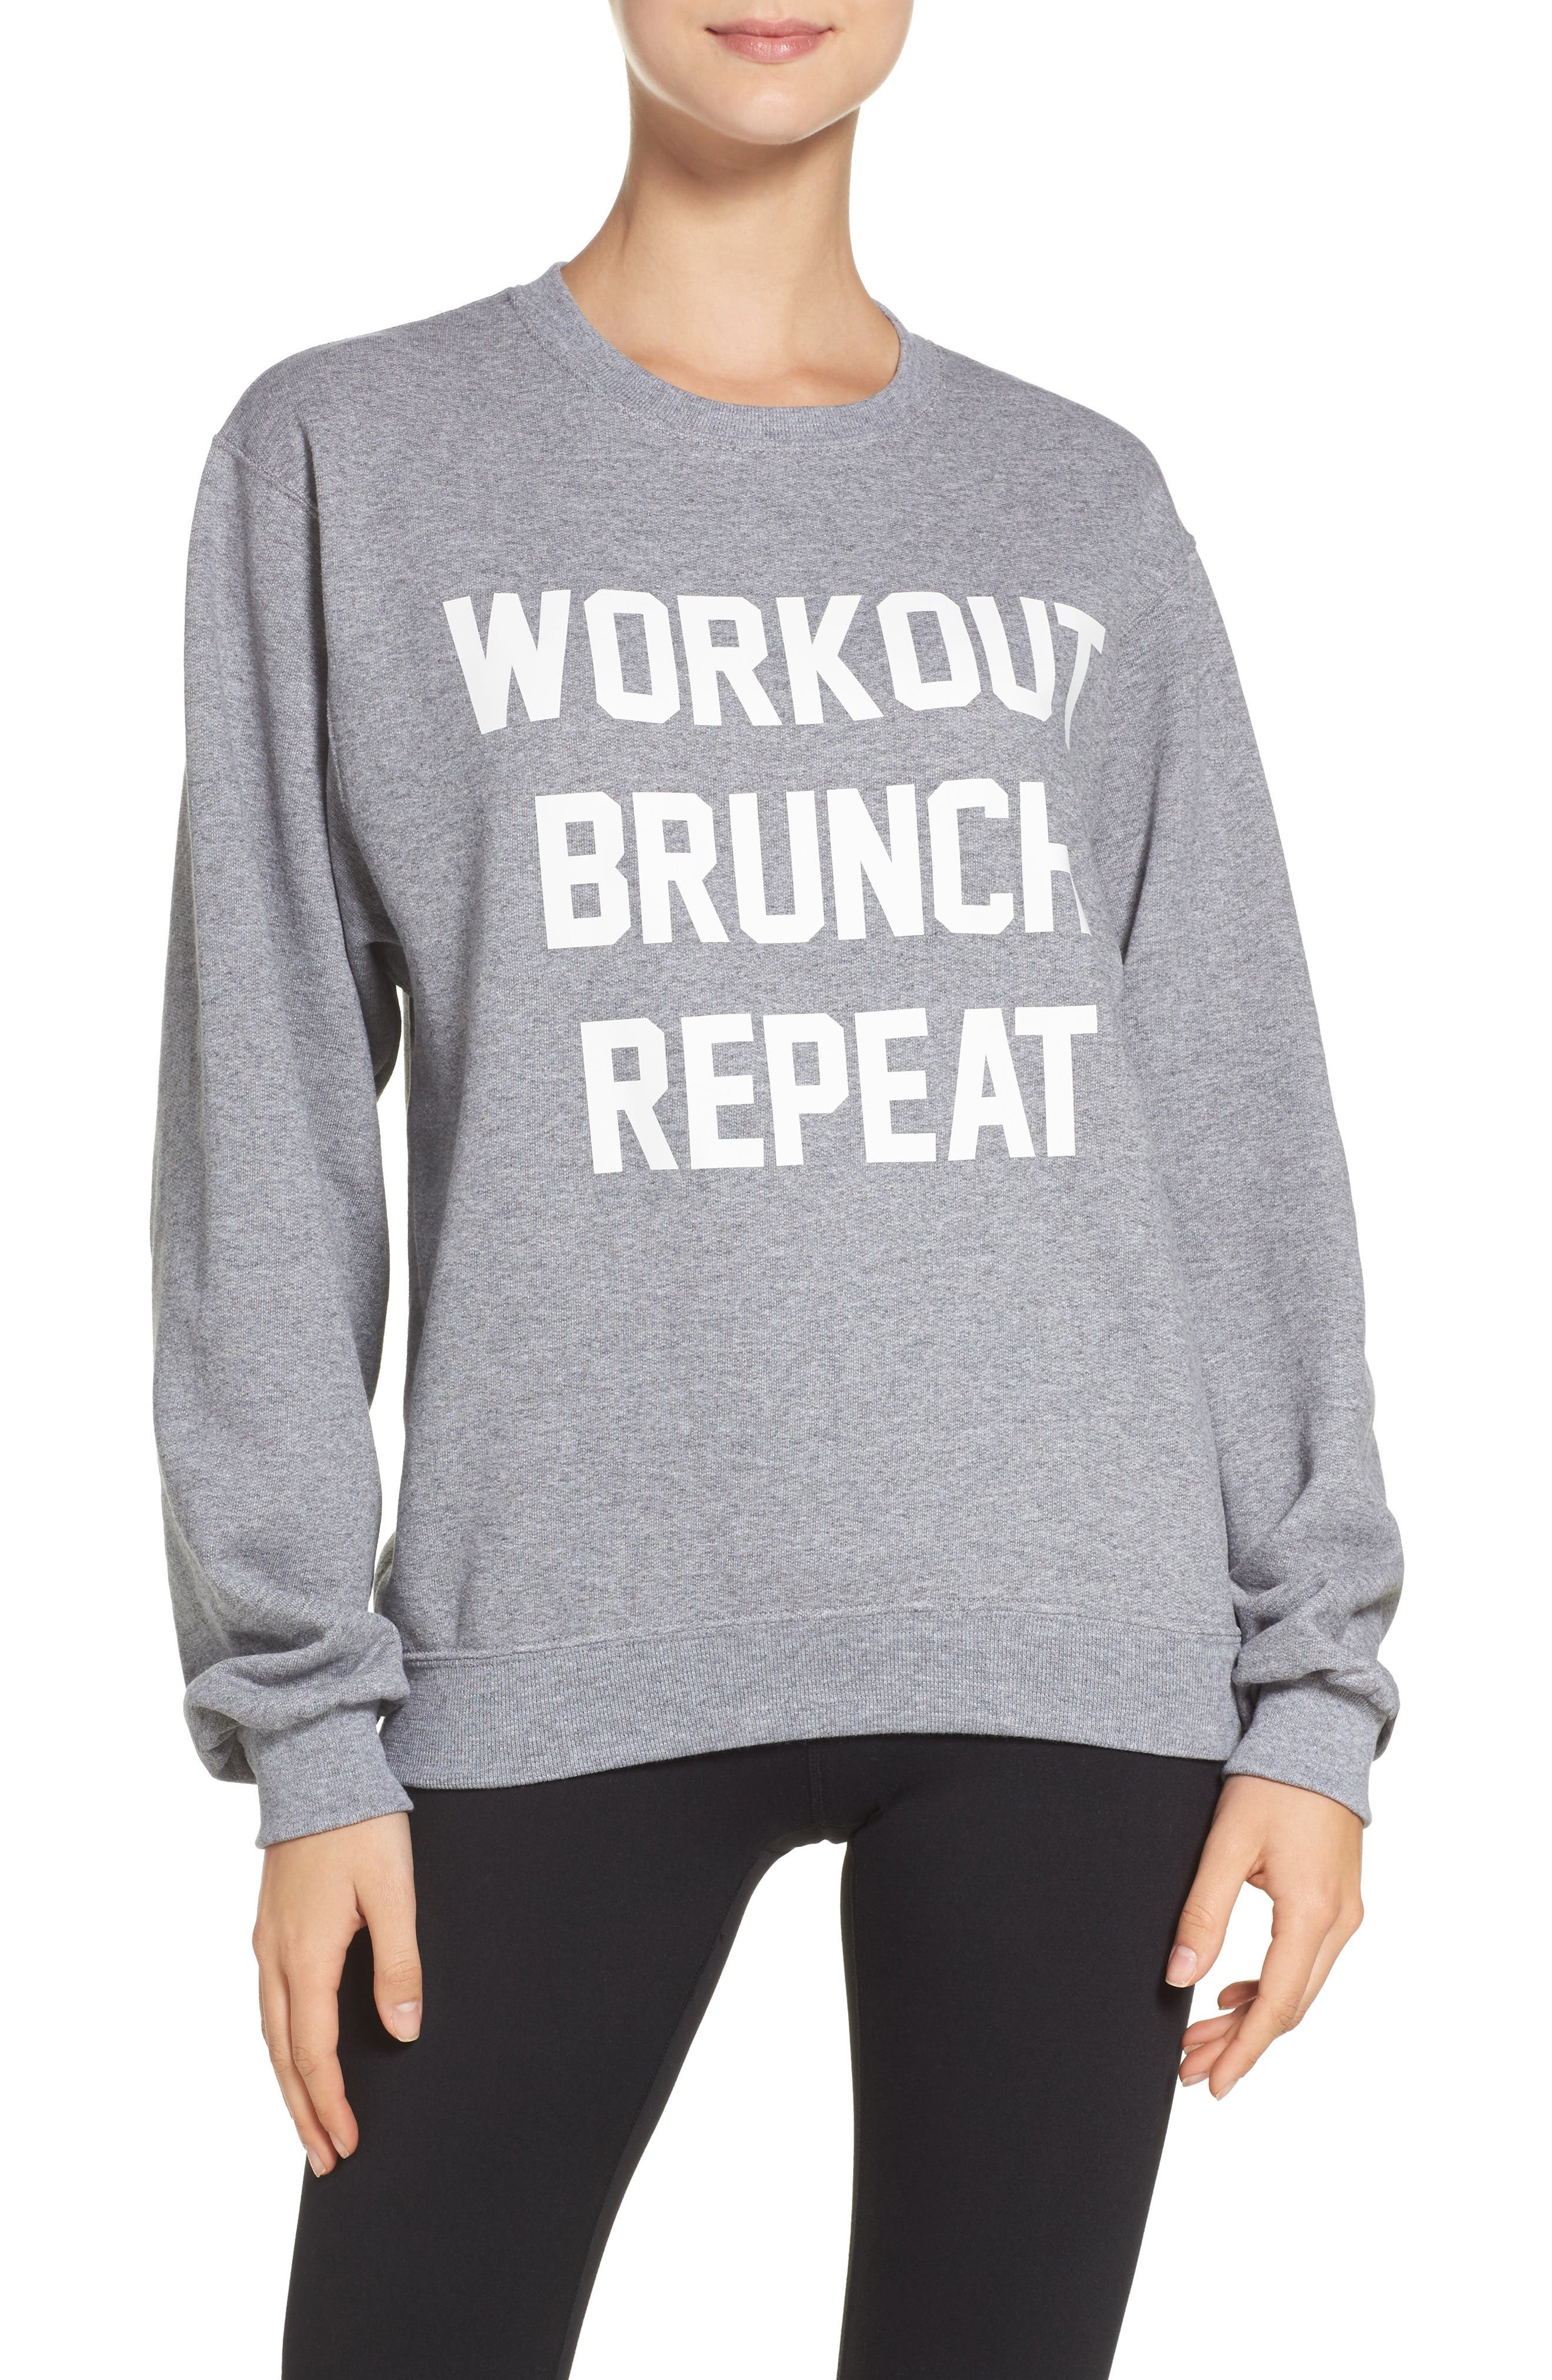 Main Image - Private Party Workout Brunch Repeat Sweatshirt